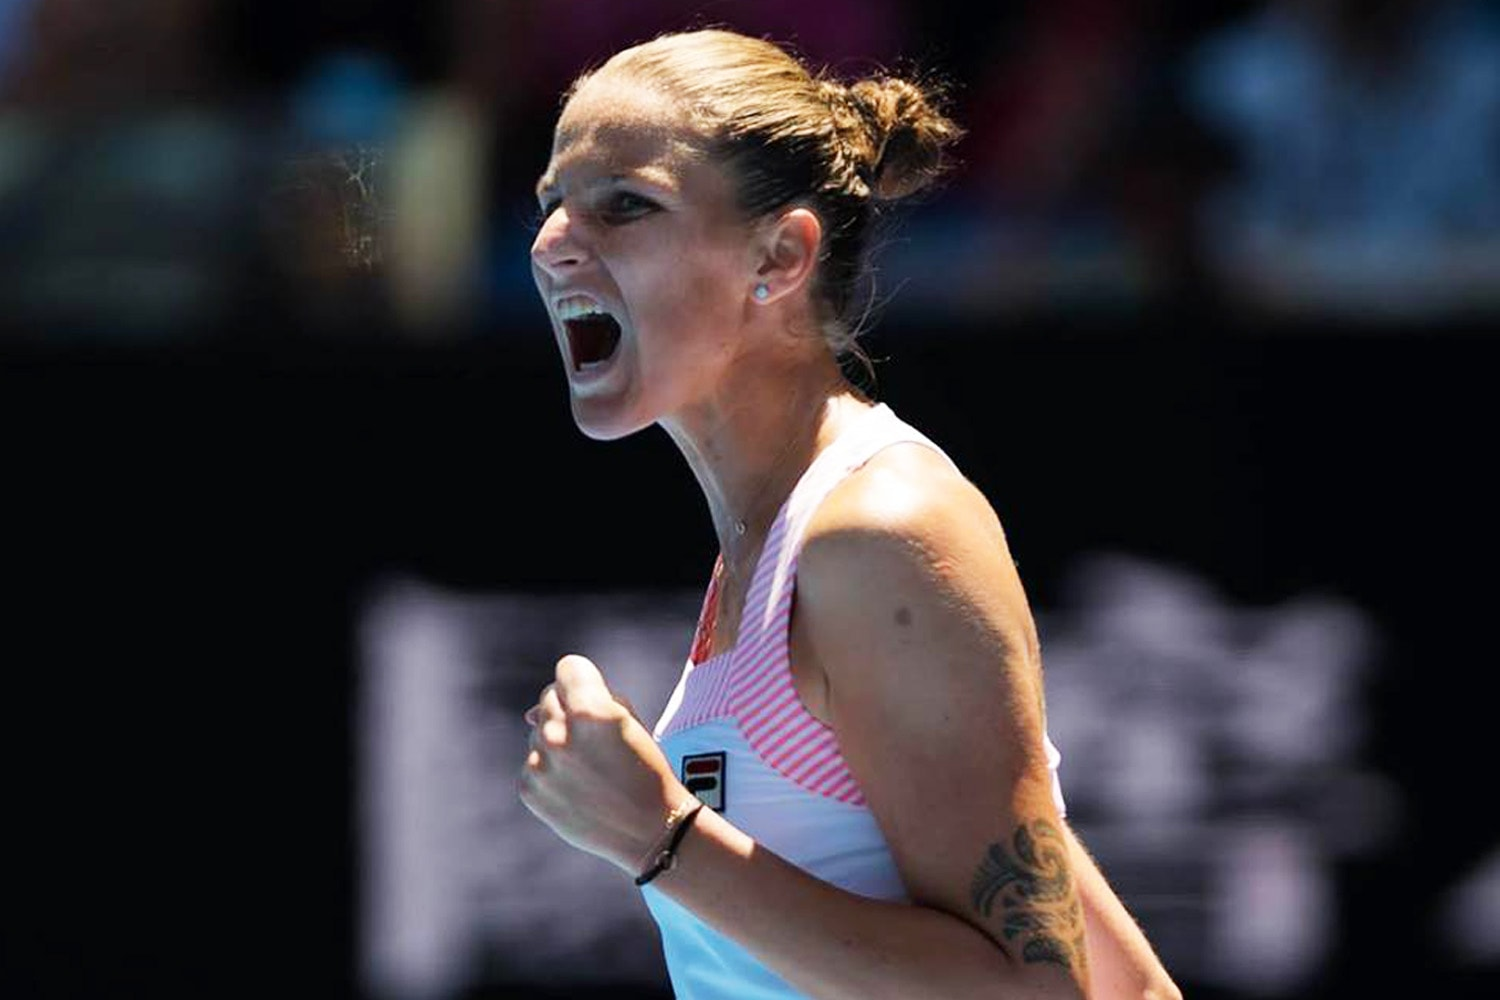 Plíšková knocks Serena out of Australian Open, sets up possible all-Czech final